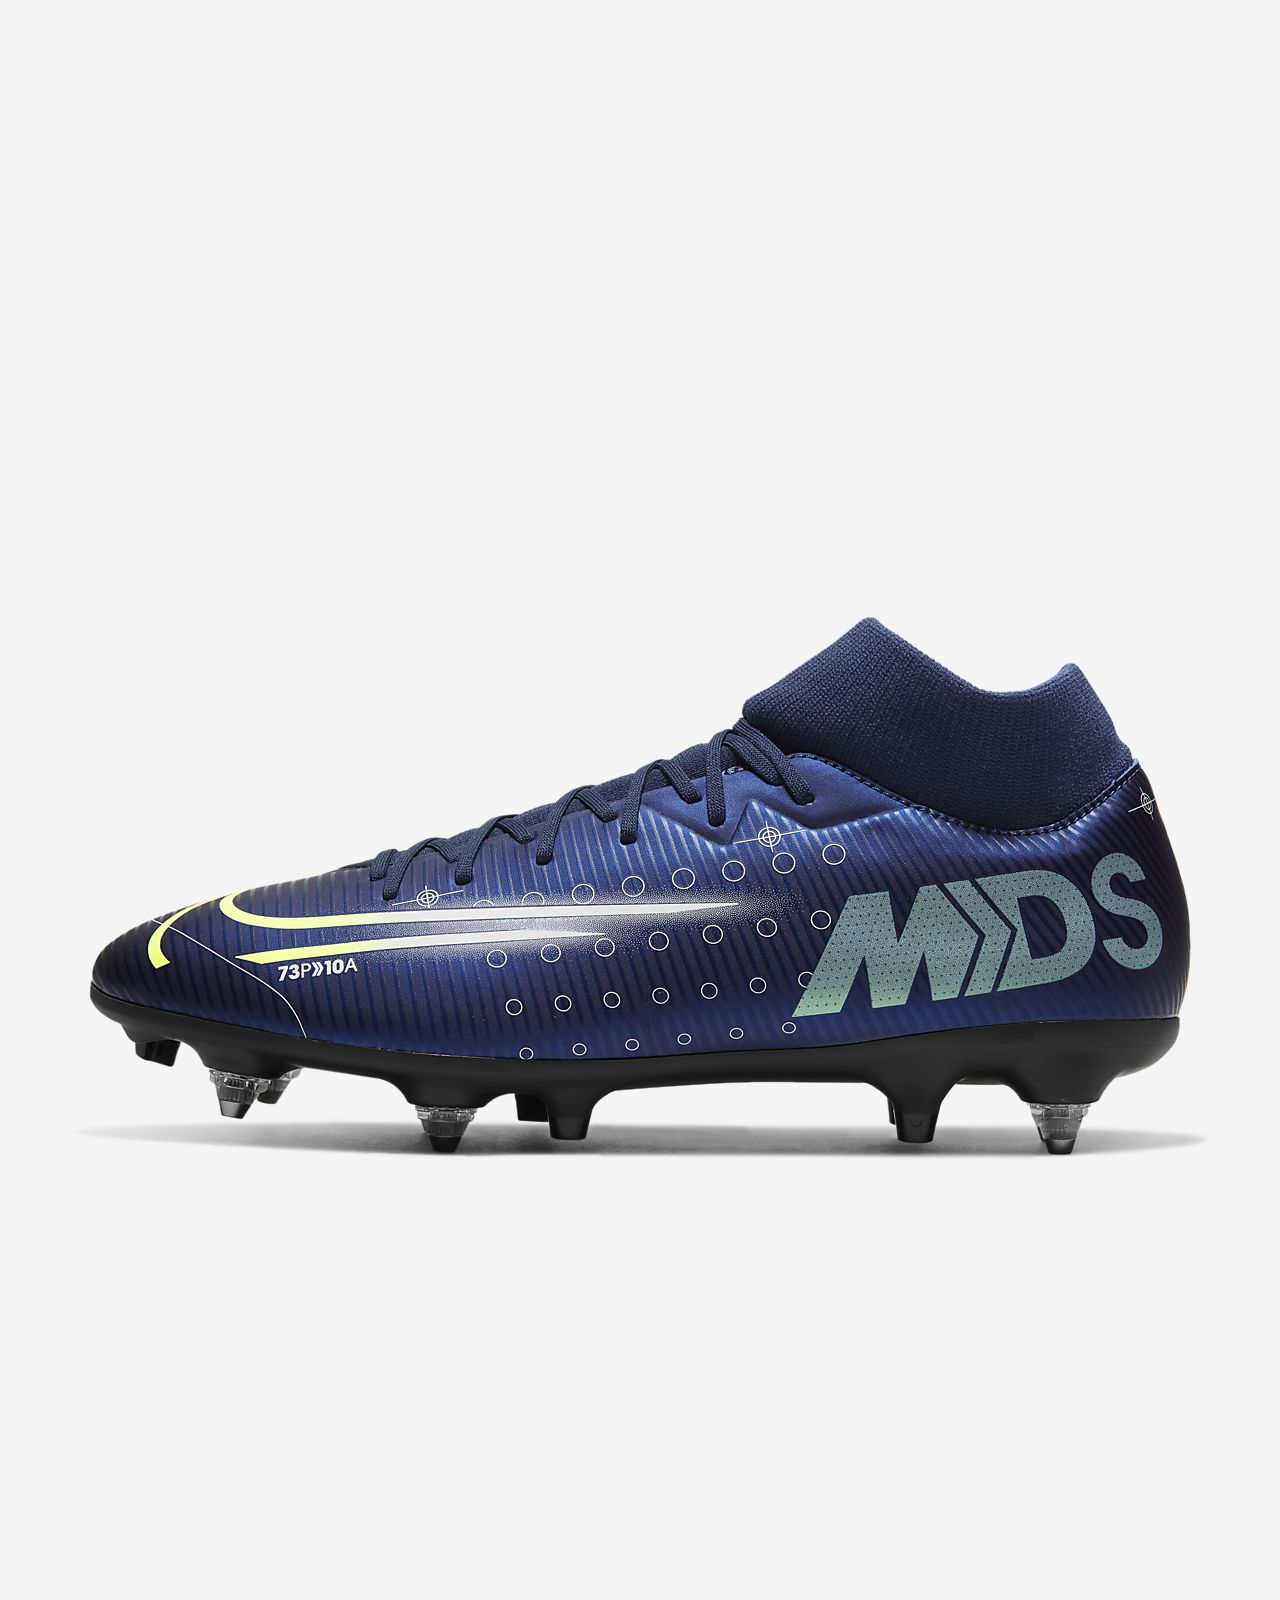 lowest price great deals great look Chaussure de football à crampons pour terrain gras Nike Mercurial Superfly  7 Academy MDS SG-PRO Anti-Clog Traction